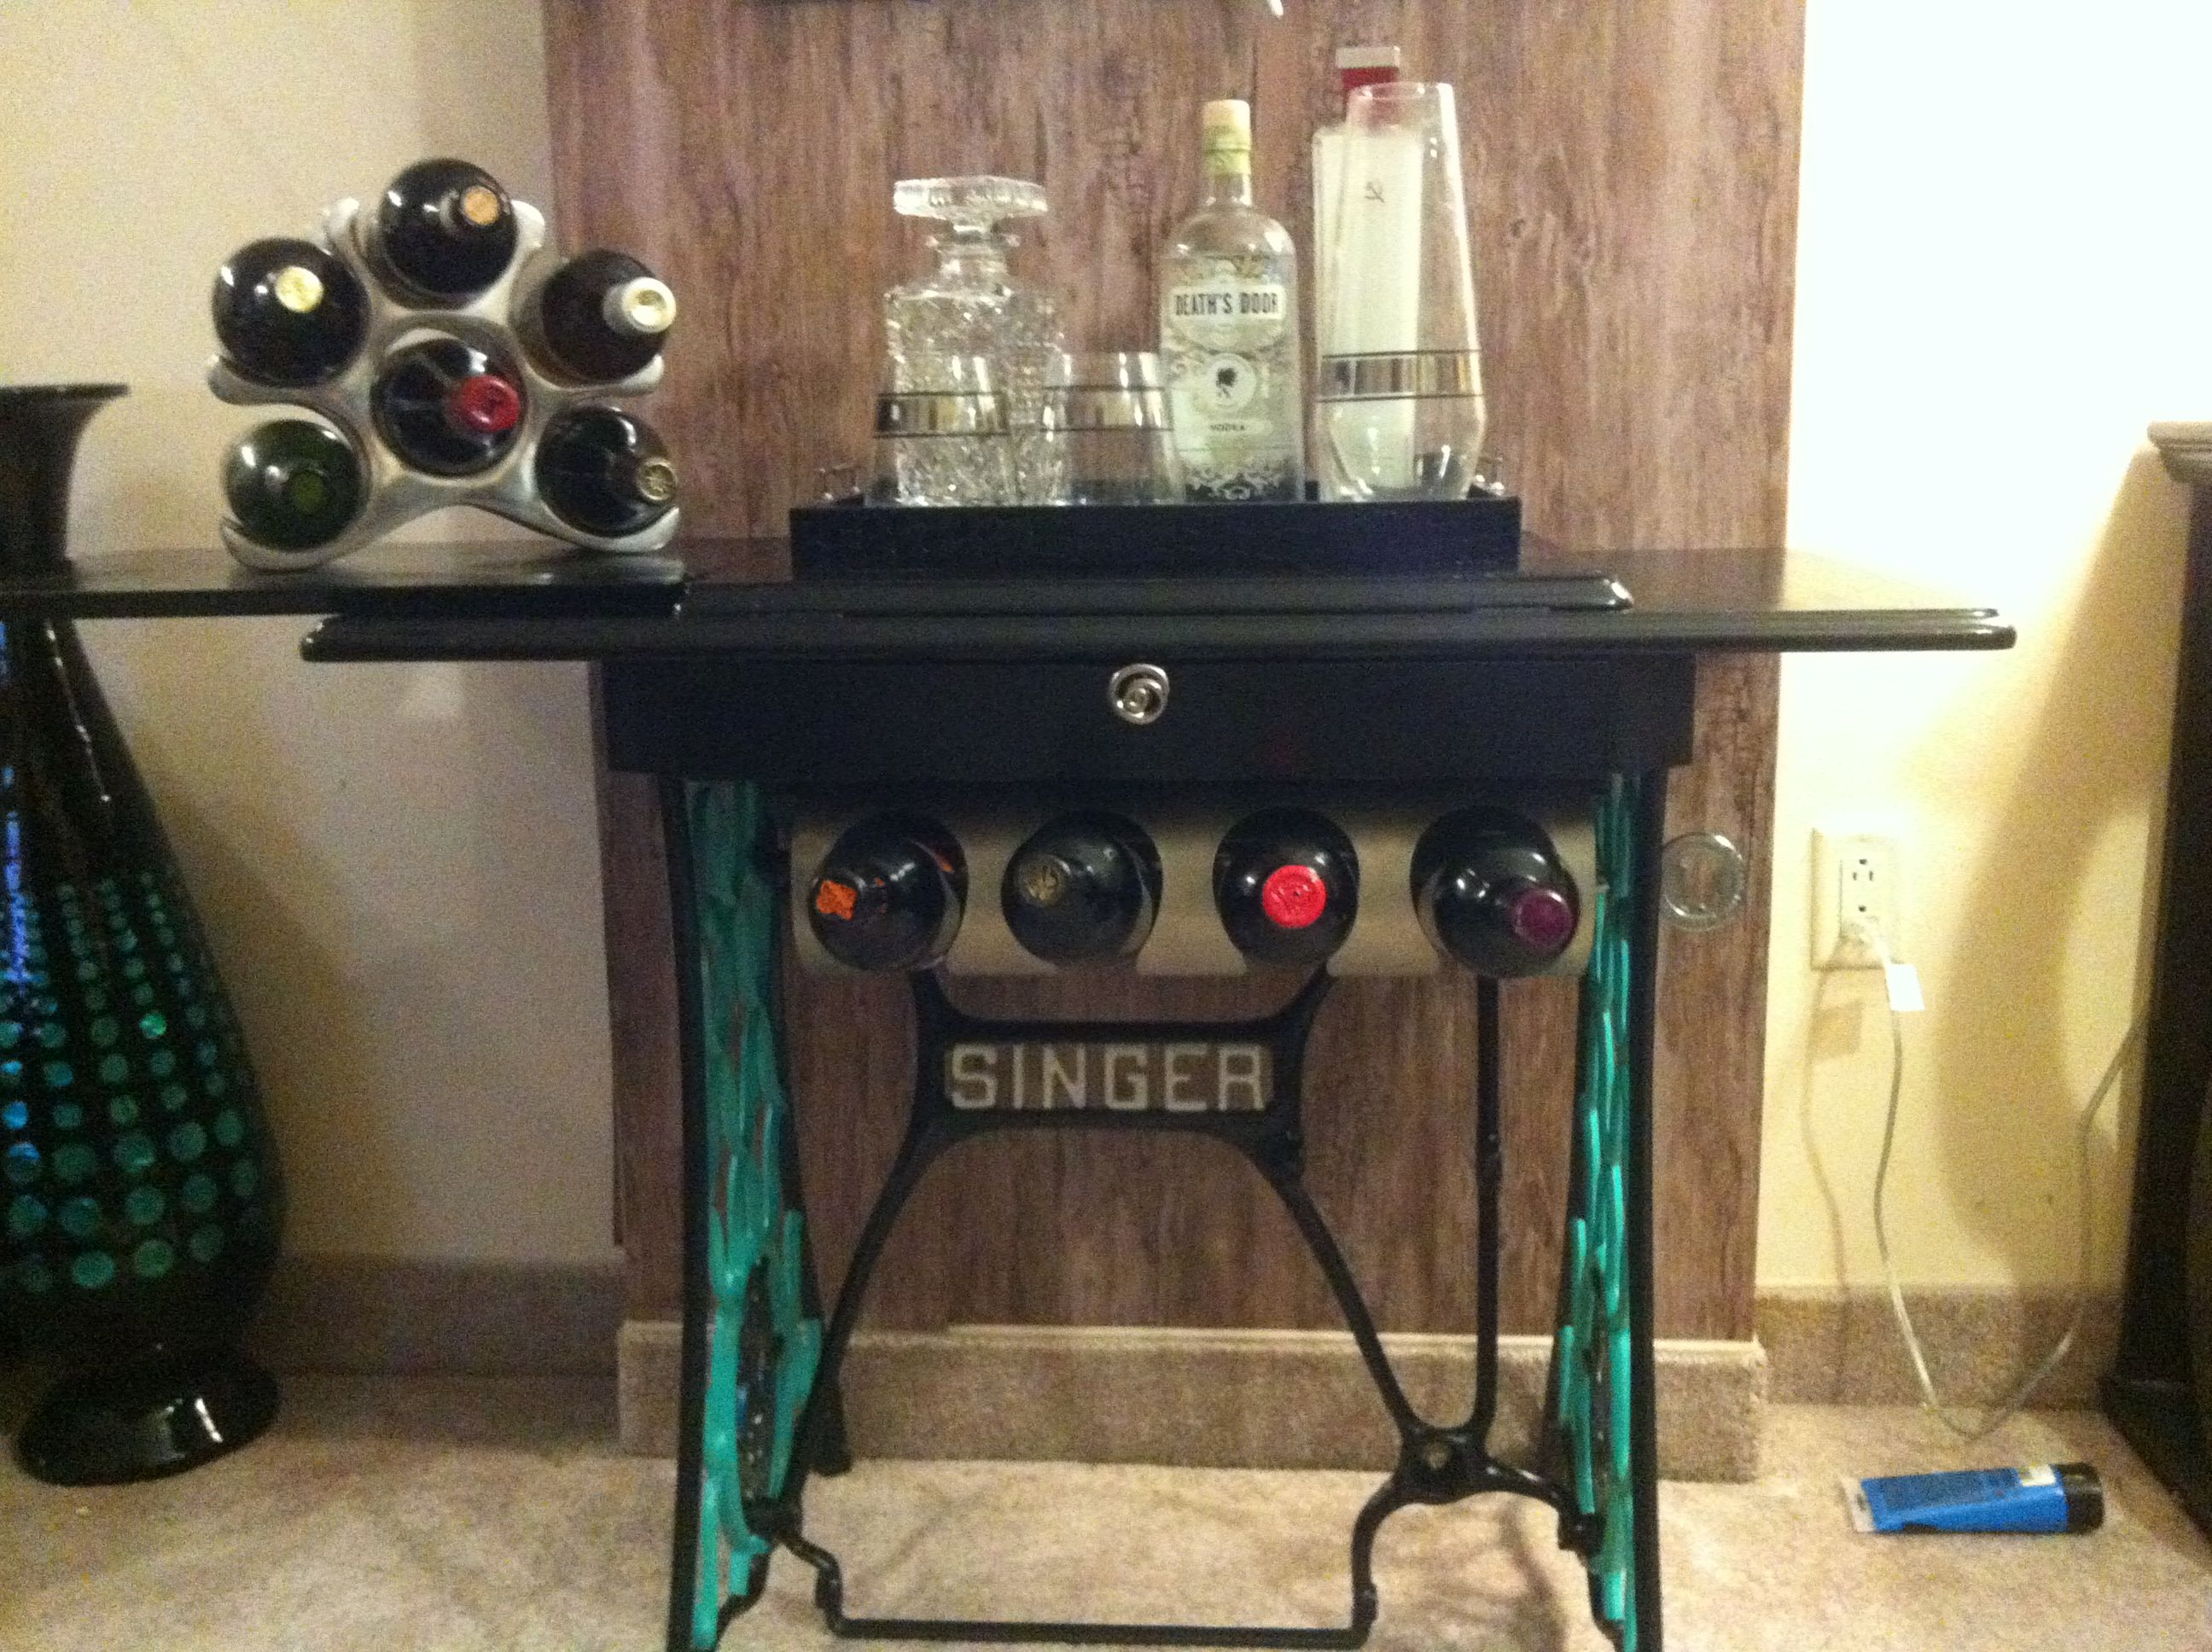 Old Singer Sewing Machine Refurbished And Hand Painted For